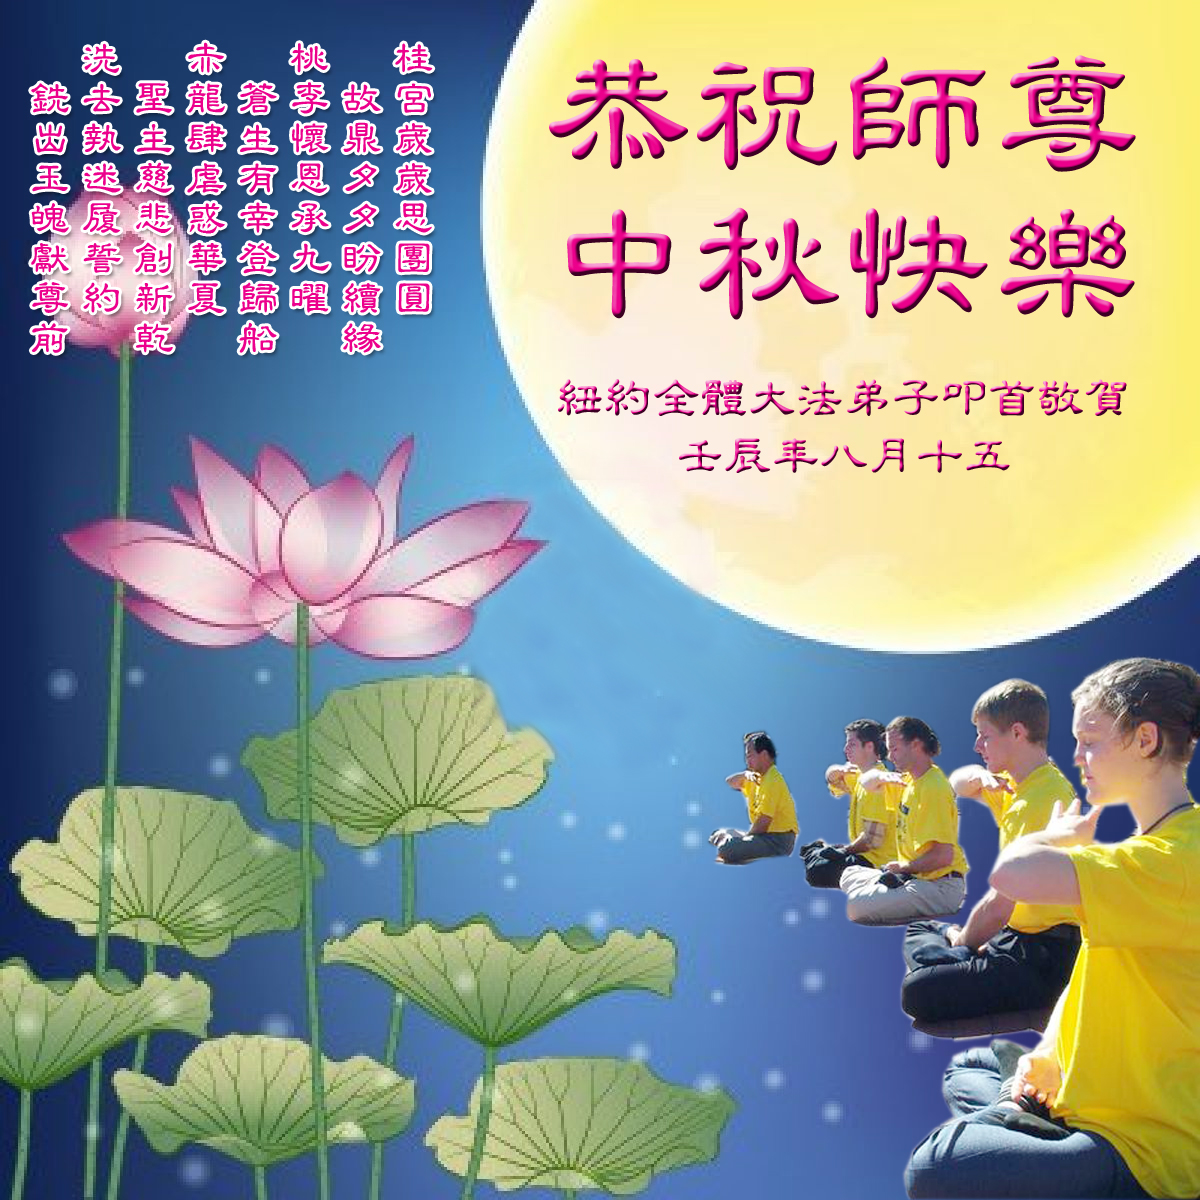 Falun Dafa Practitioners Outside China Respectfully Wish Revered